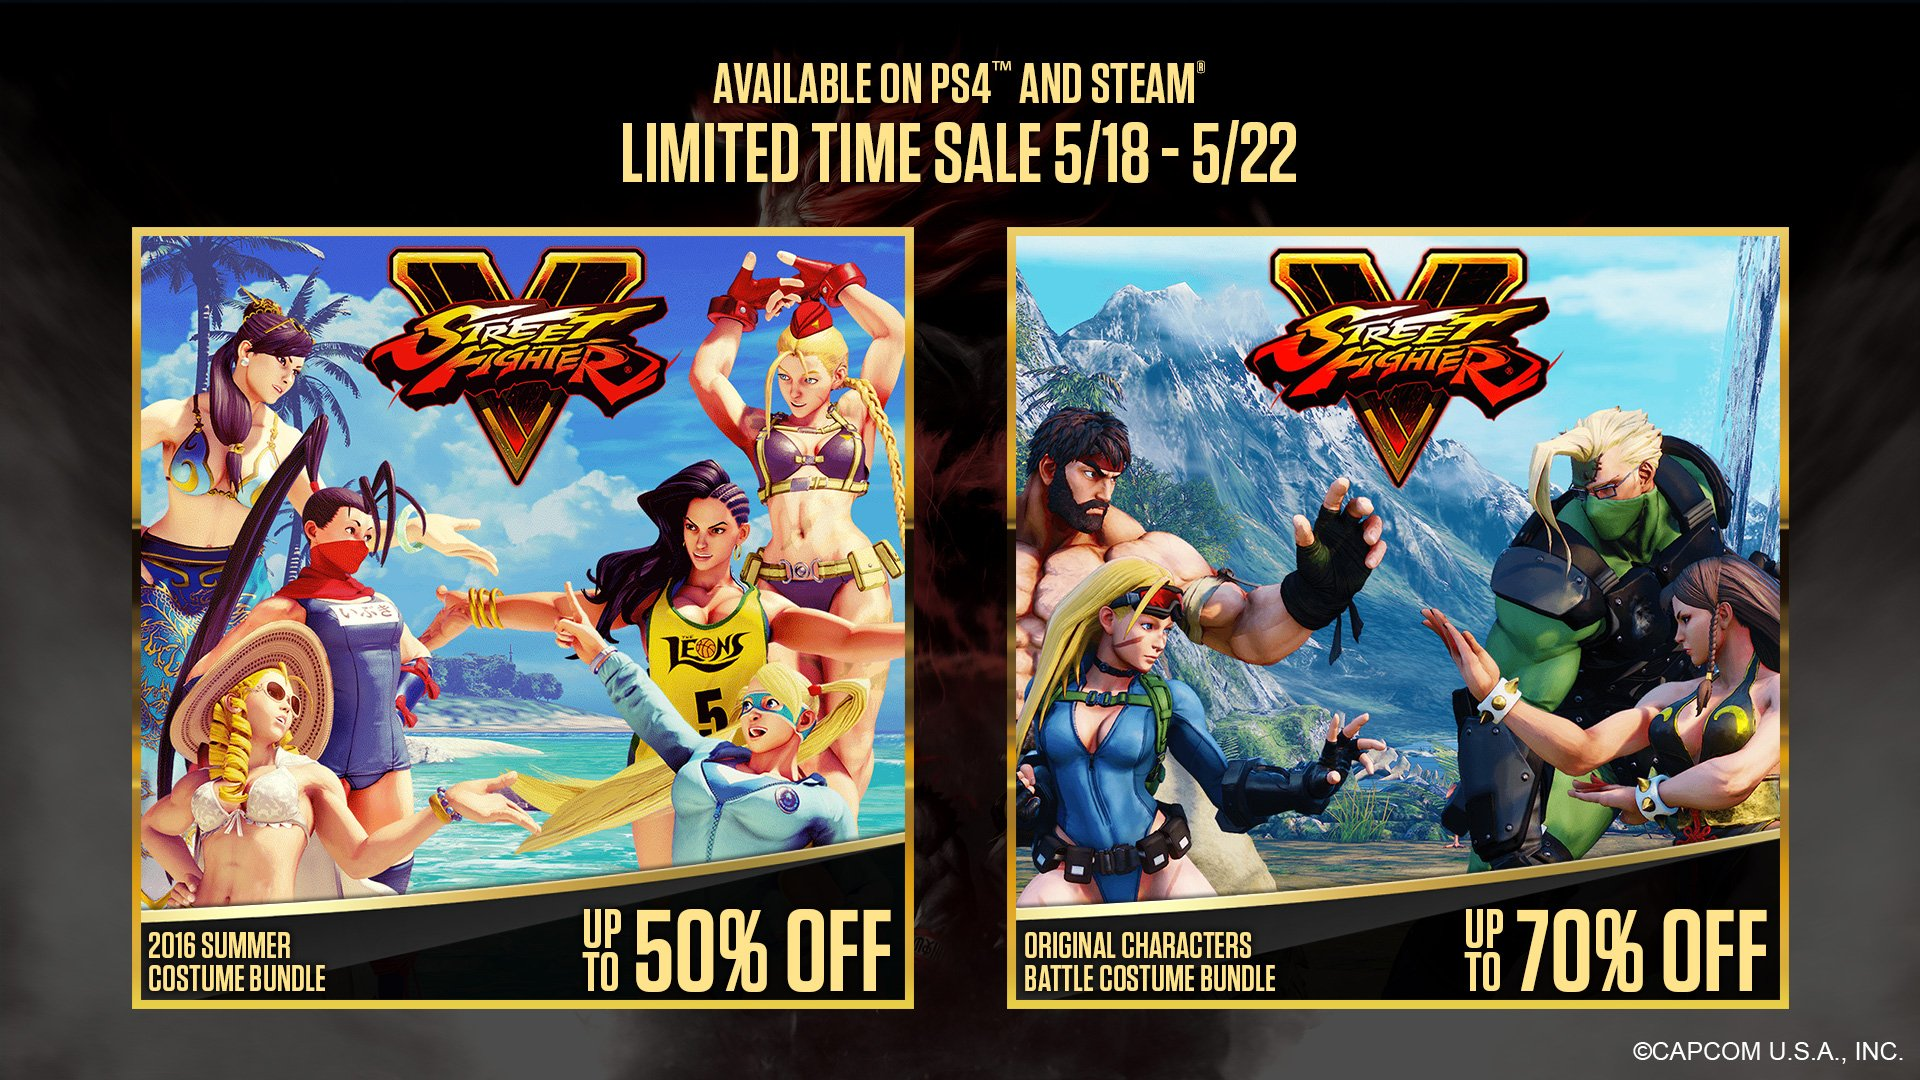 Street Fighter On Twitter The 2016 Summer Costume Bundle And Original Characters Battle Costume Pack Are On Sale Until May 22 Steam Worldwide Https T Co Rexj5sjilf Ps4 Americas Only Https T Co Gr6uxdzeee Https T Co Wljnxdjkmj